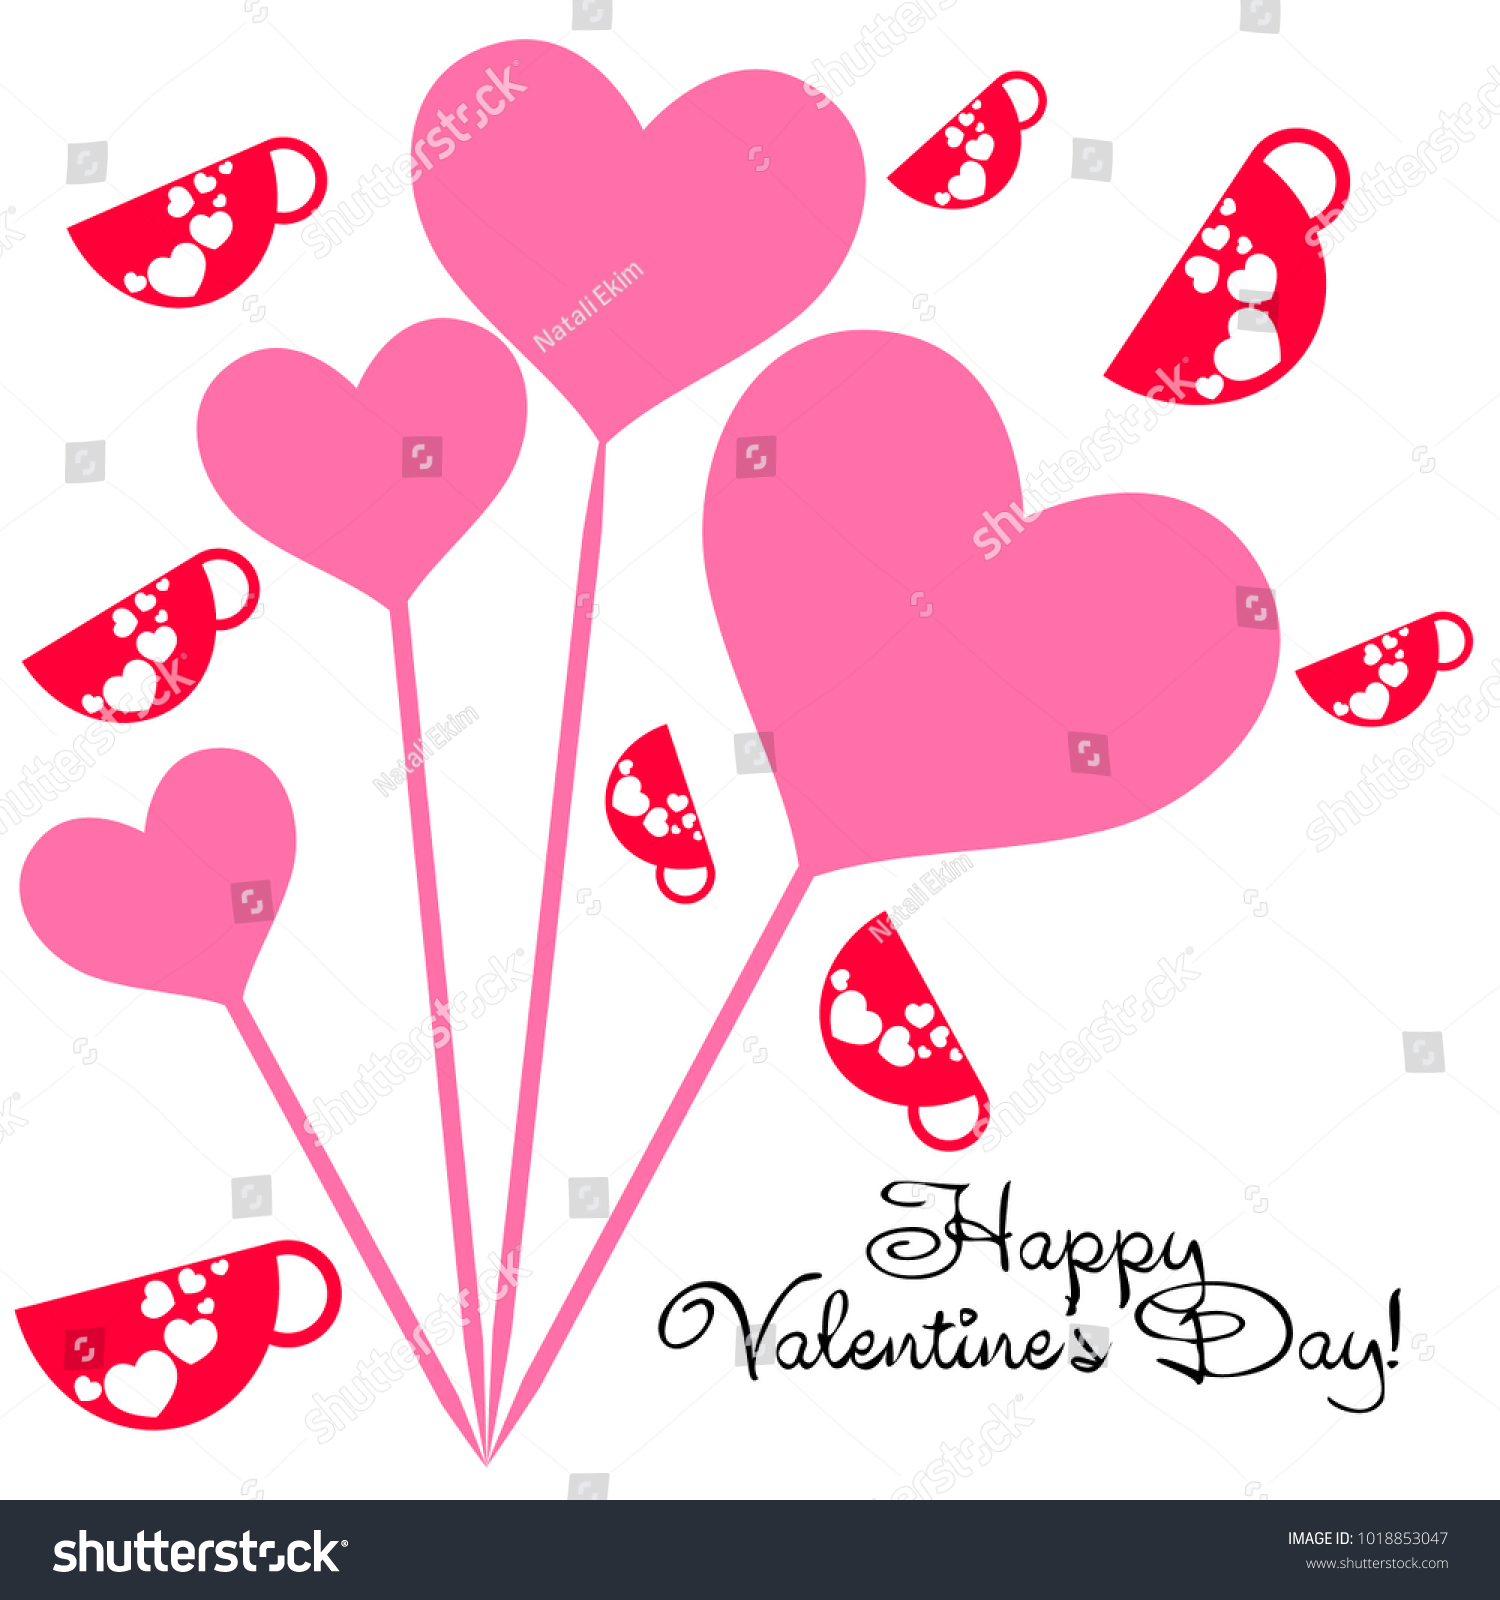 Greeting card st valentines day red stock vector 1018853047 greeting card with st valentines day red mugs for lovers with prints skrdechki kristyandbryce Choice Image